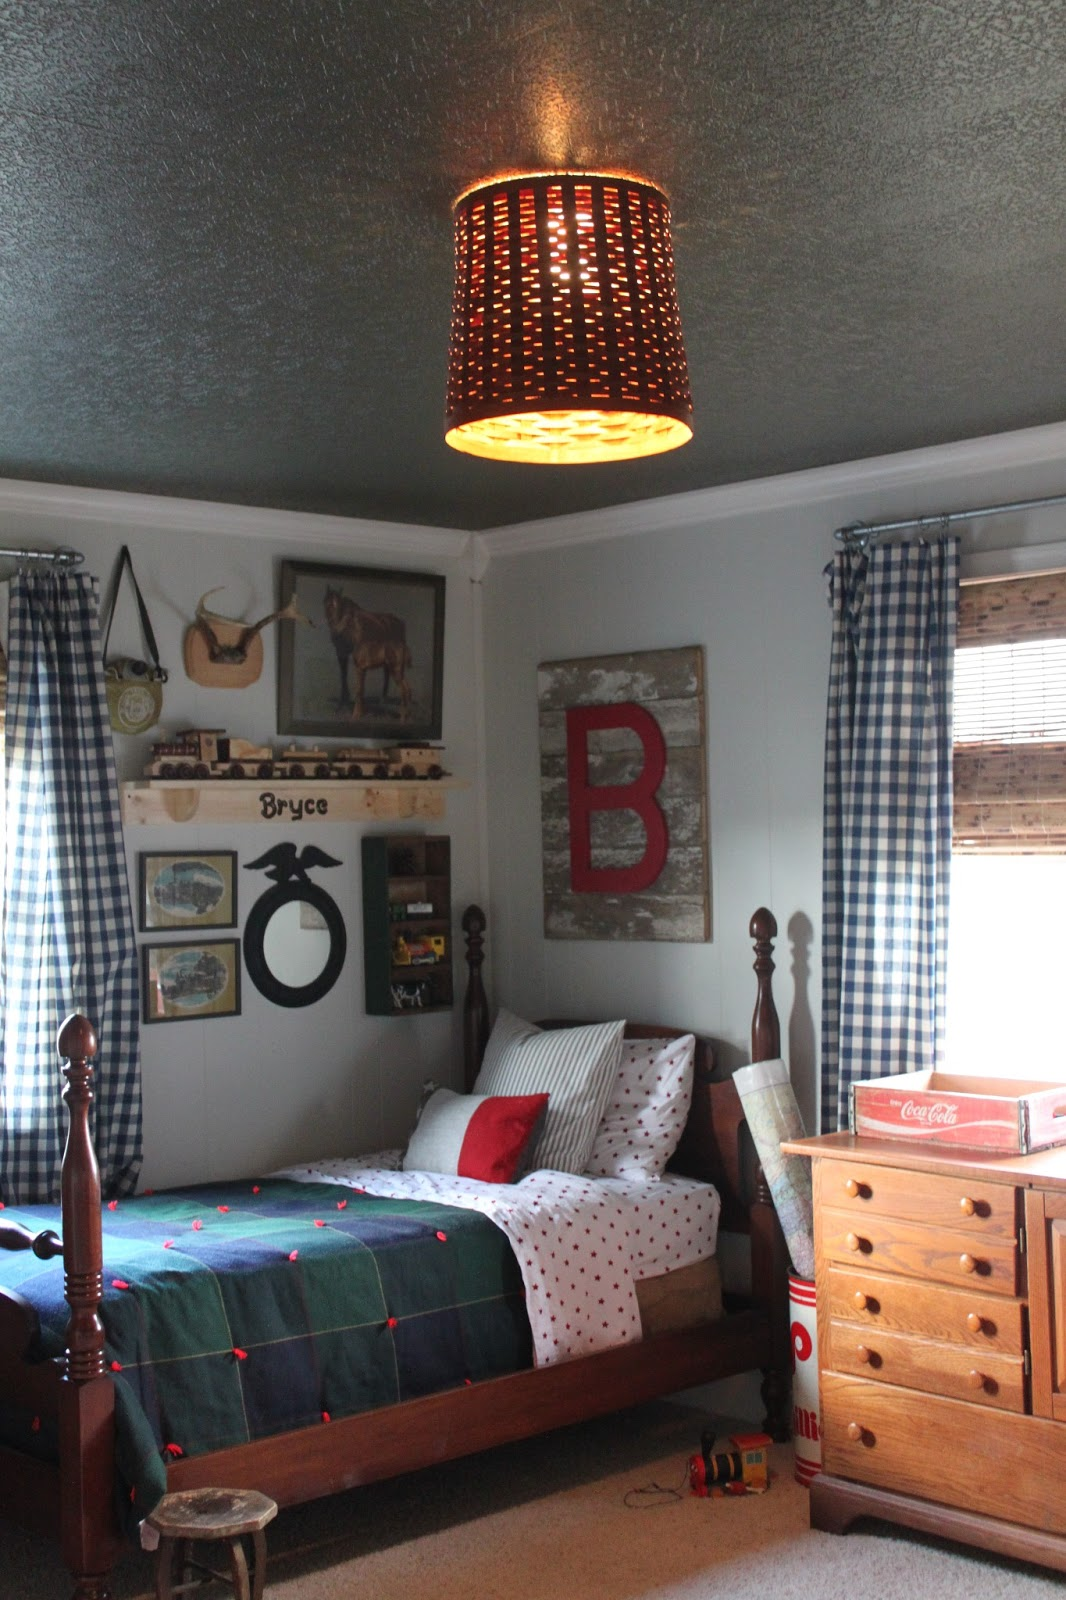 Boys Room: Maple Leaves & Sycamore Trees: The Boys' Room